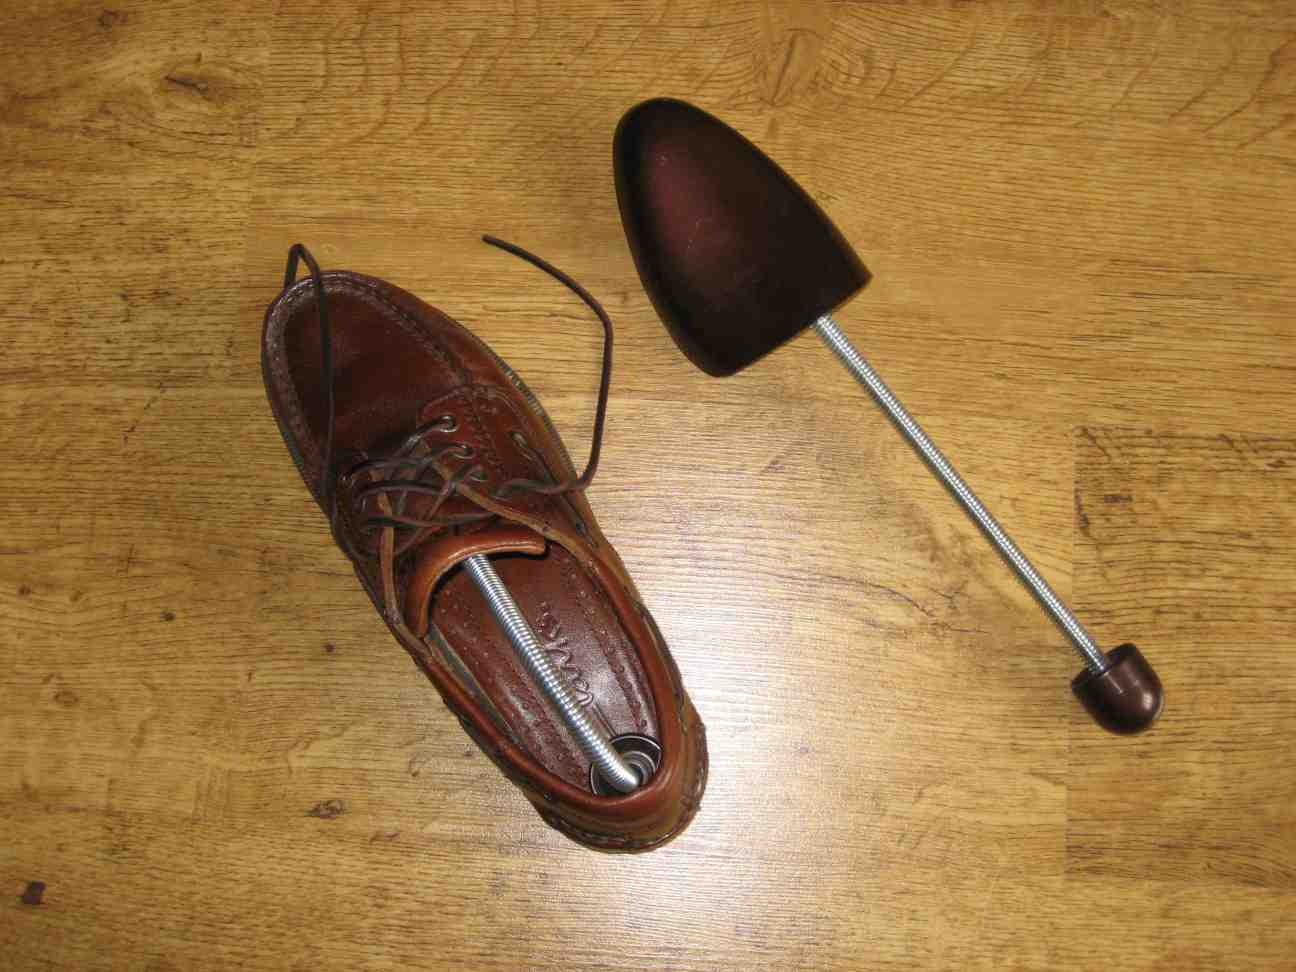 Stretch Best Shoe Stretchers